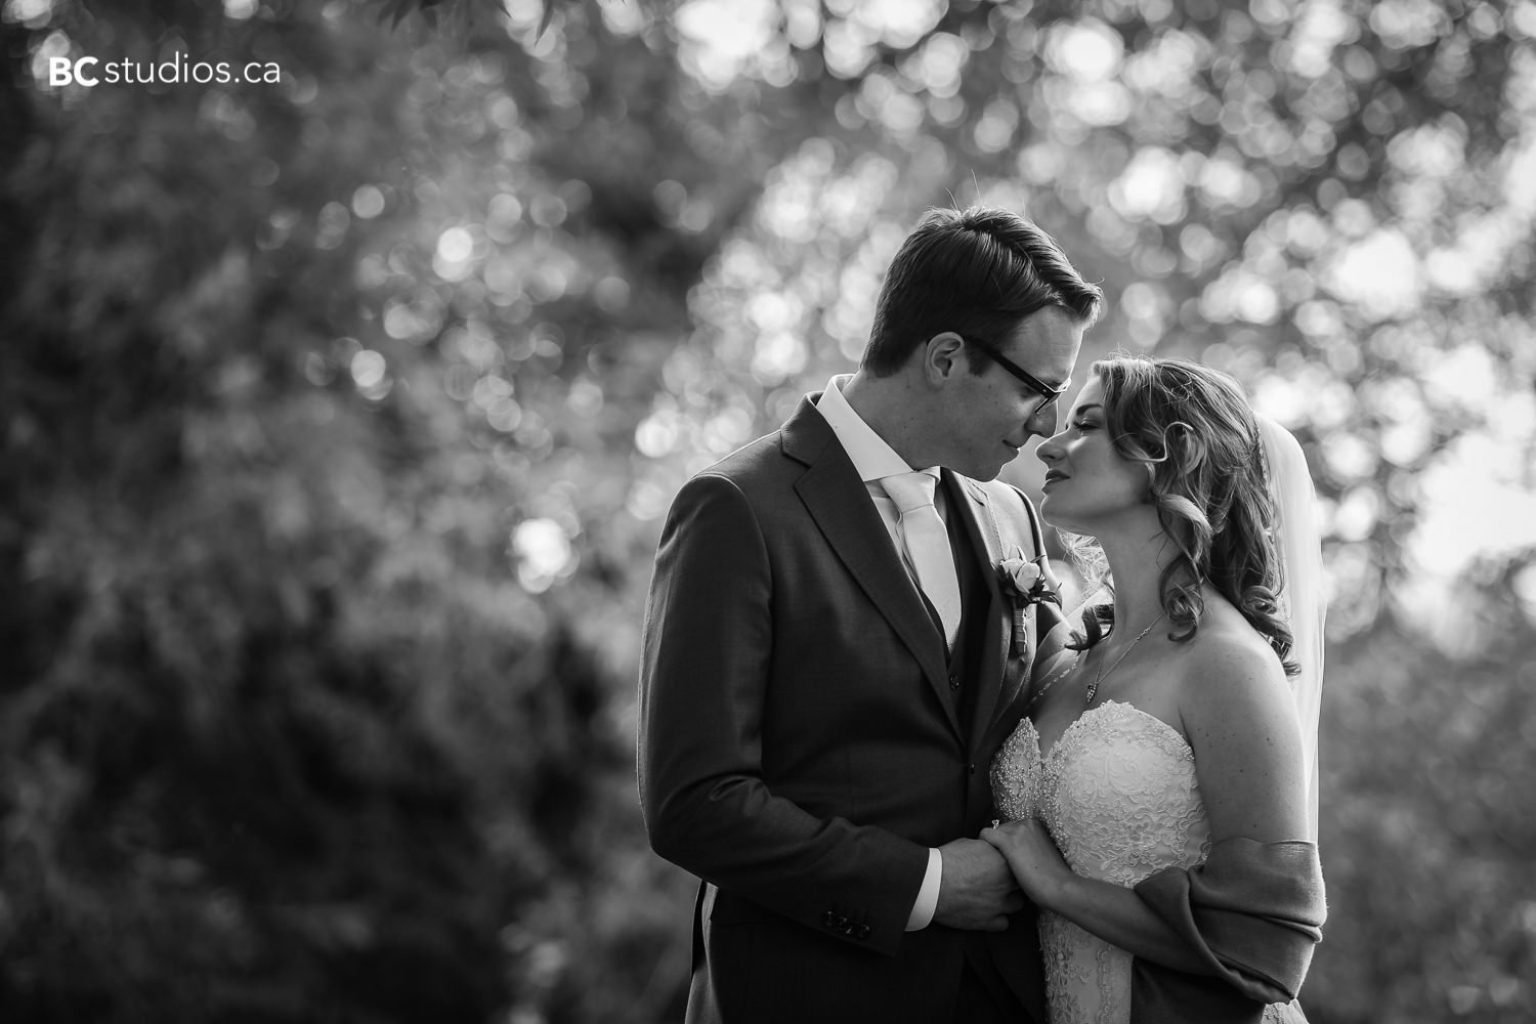 Mayotte #Wedding. Image by Edmonton #weddingphotographer Box Cube Photography © 2017 https://www.boxcubephoto.com #edmontonweddings #edmontonbride #edmontonweddingphotographer #edmontonphotographer — at The Country Lodge in Edmonton, Alberta.